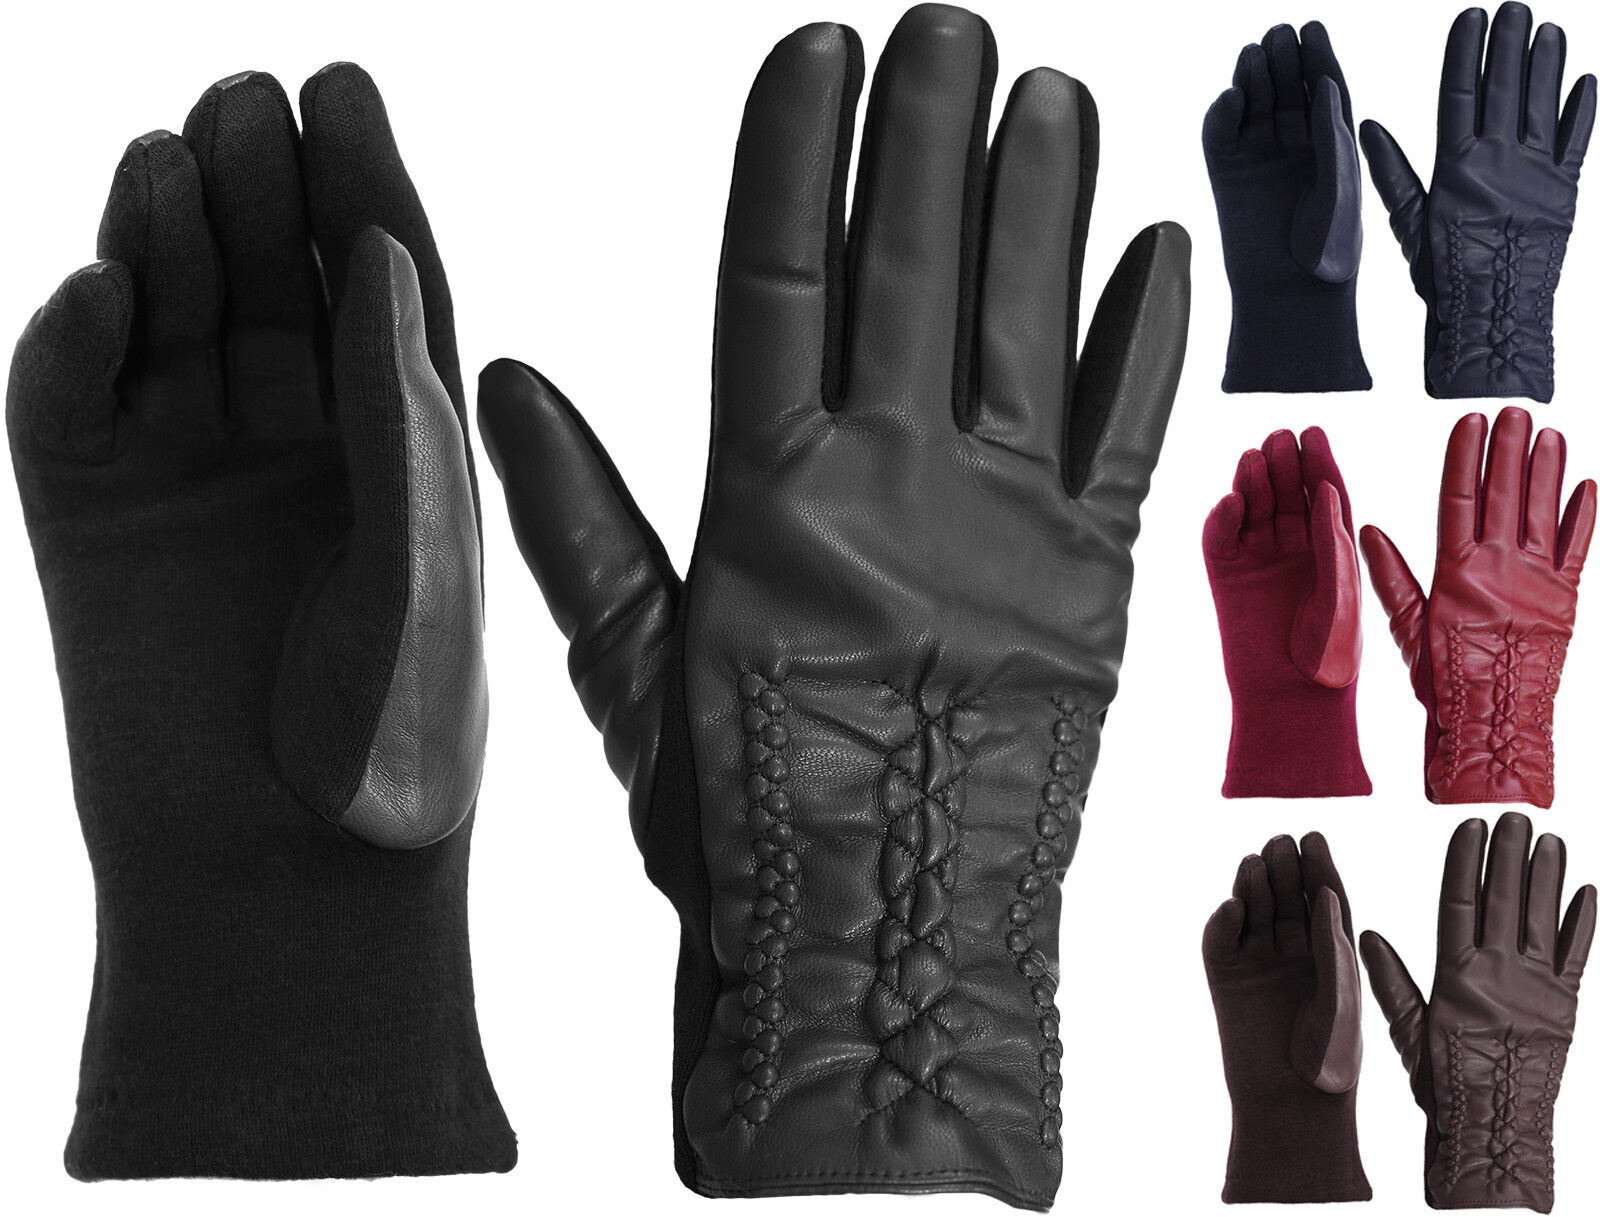 Womens Chick Cotton Leather Front Plaited Winter Gloves Clothing, Shoes & Accessories